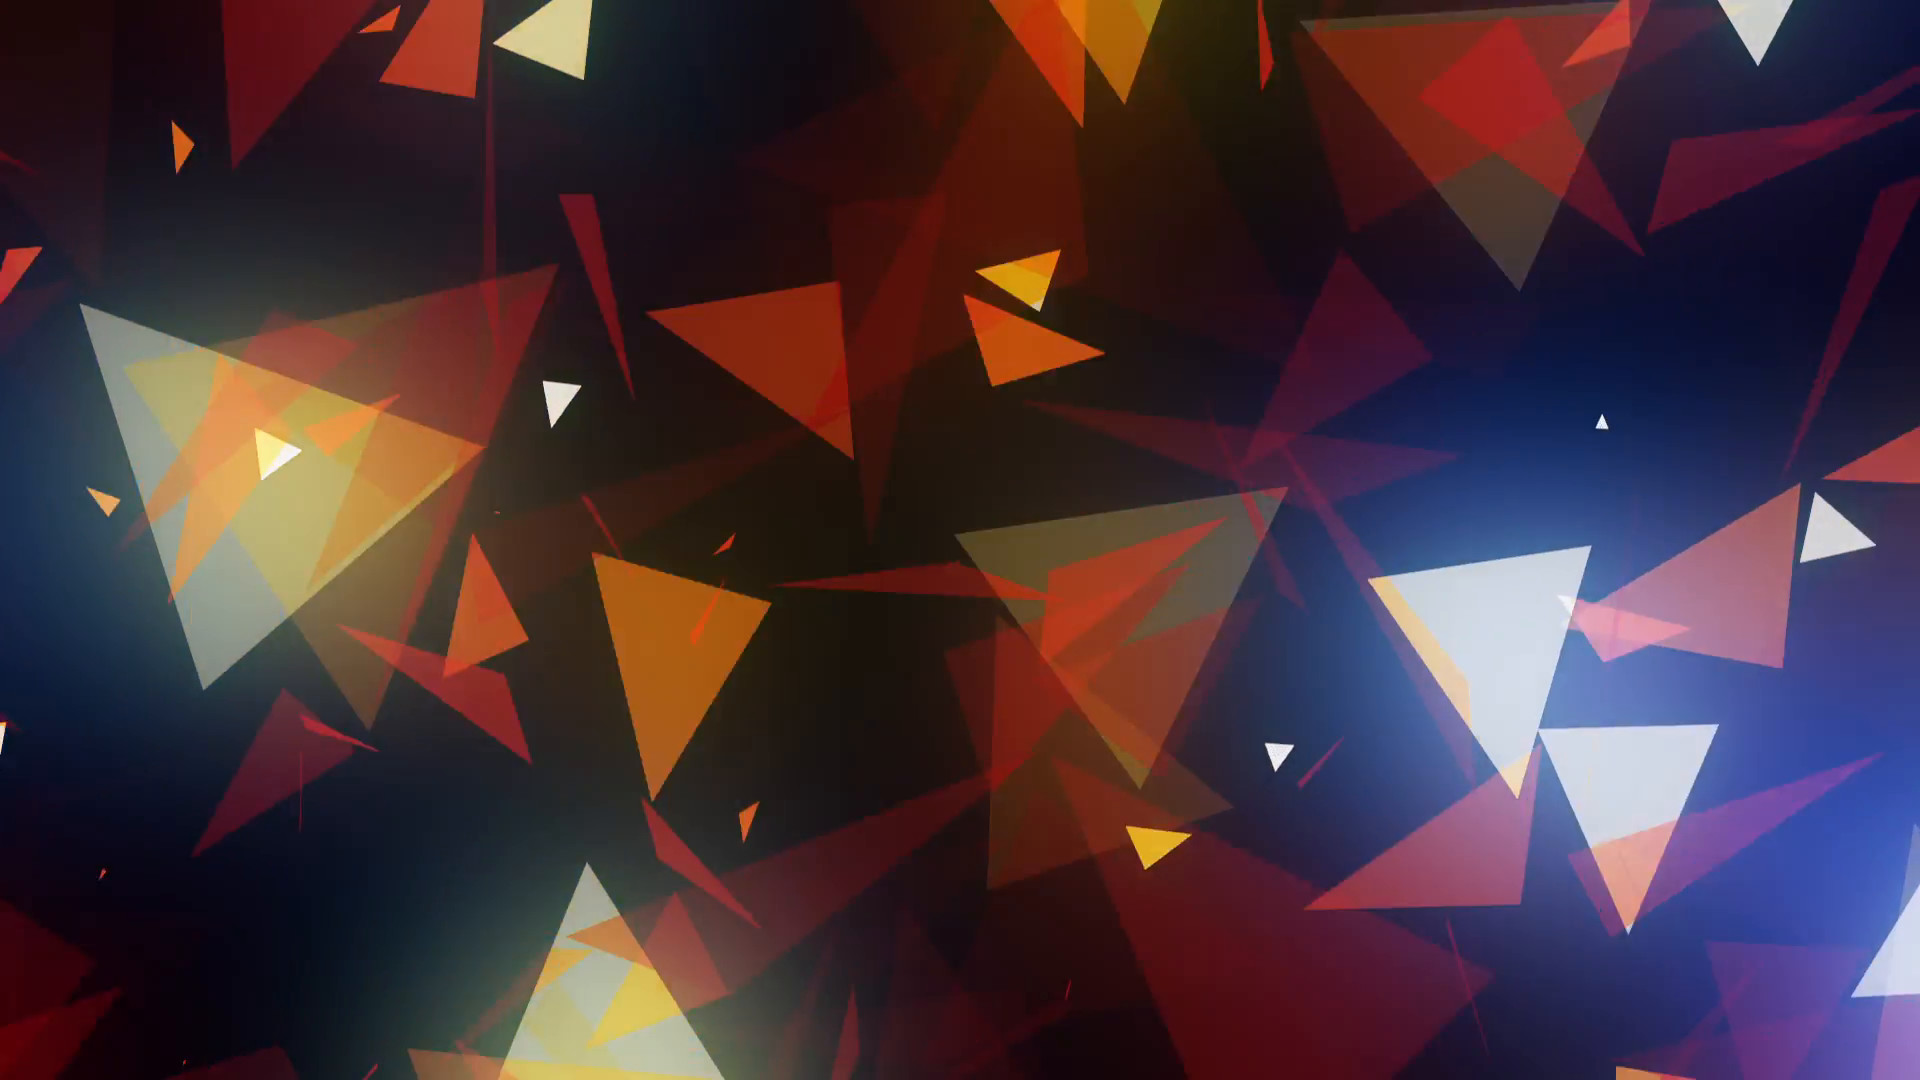 1920x1080 Glowing Multicolored Spinning Triangles Psychedelic Background VJ Loop